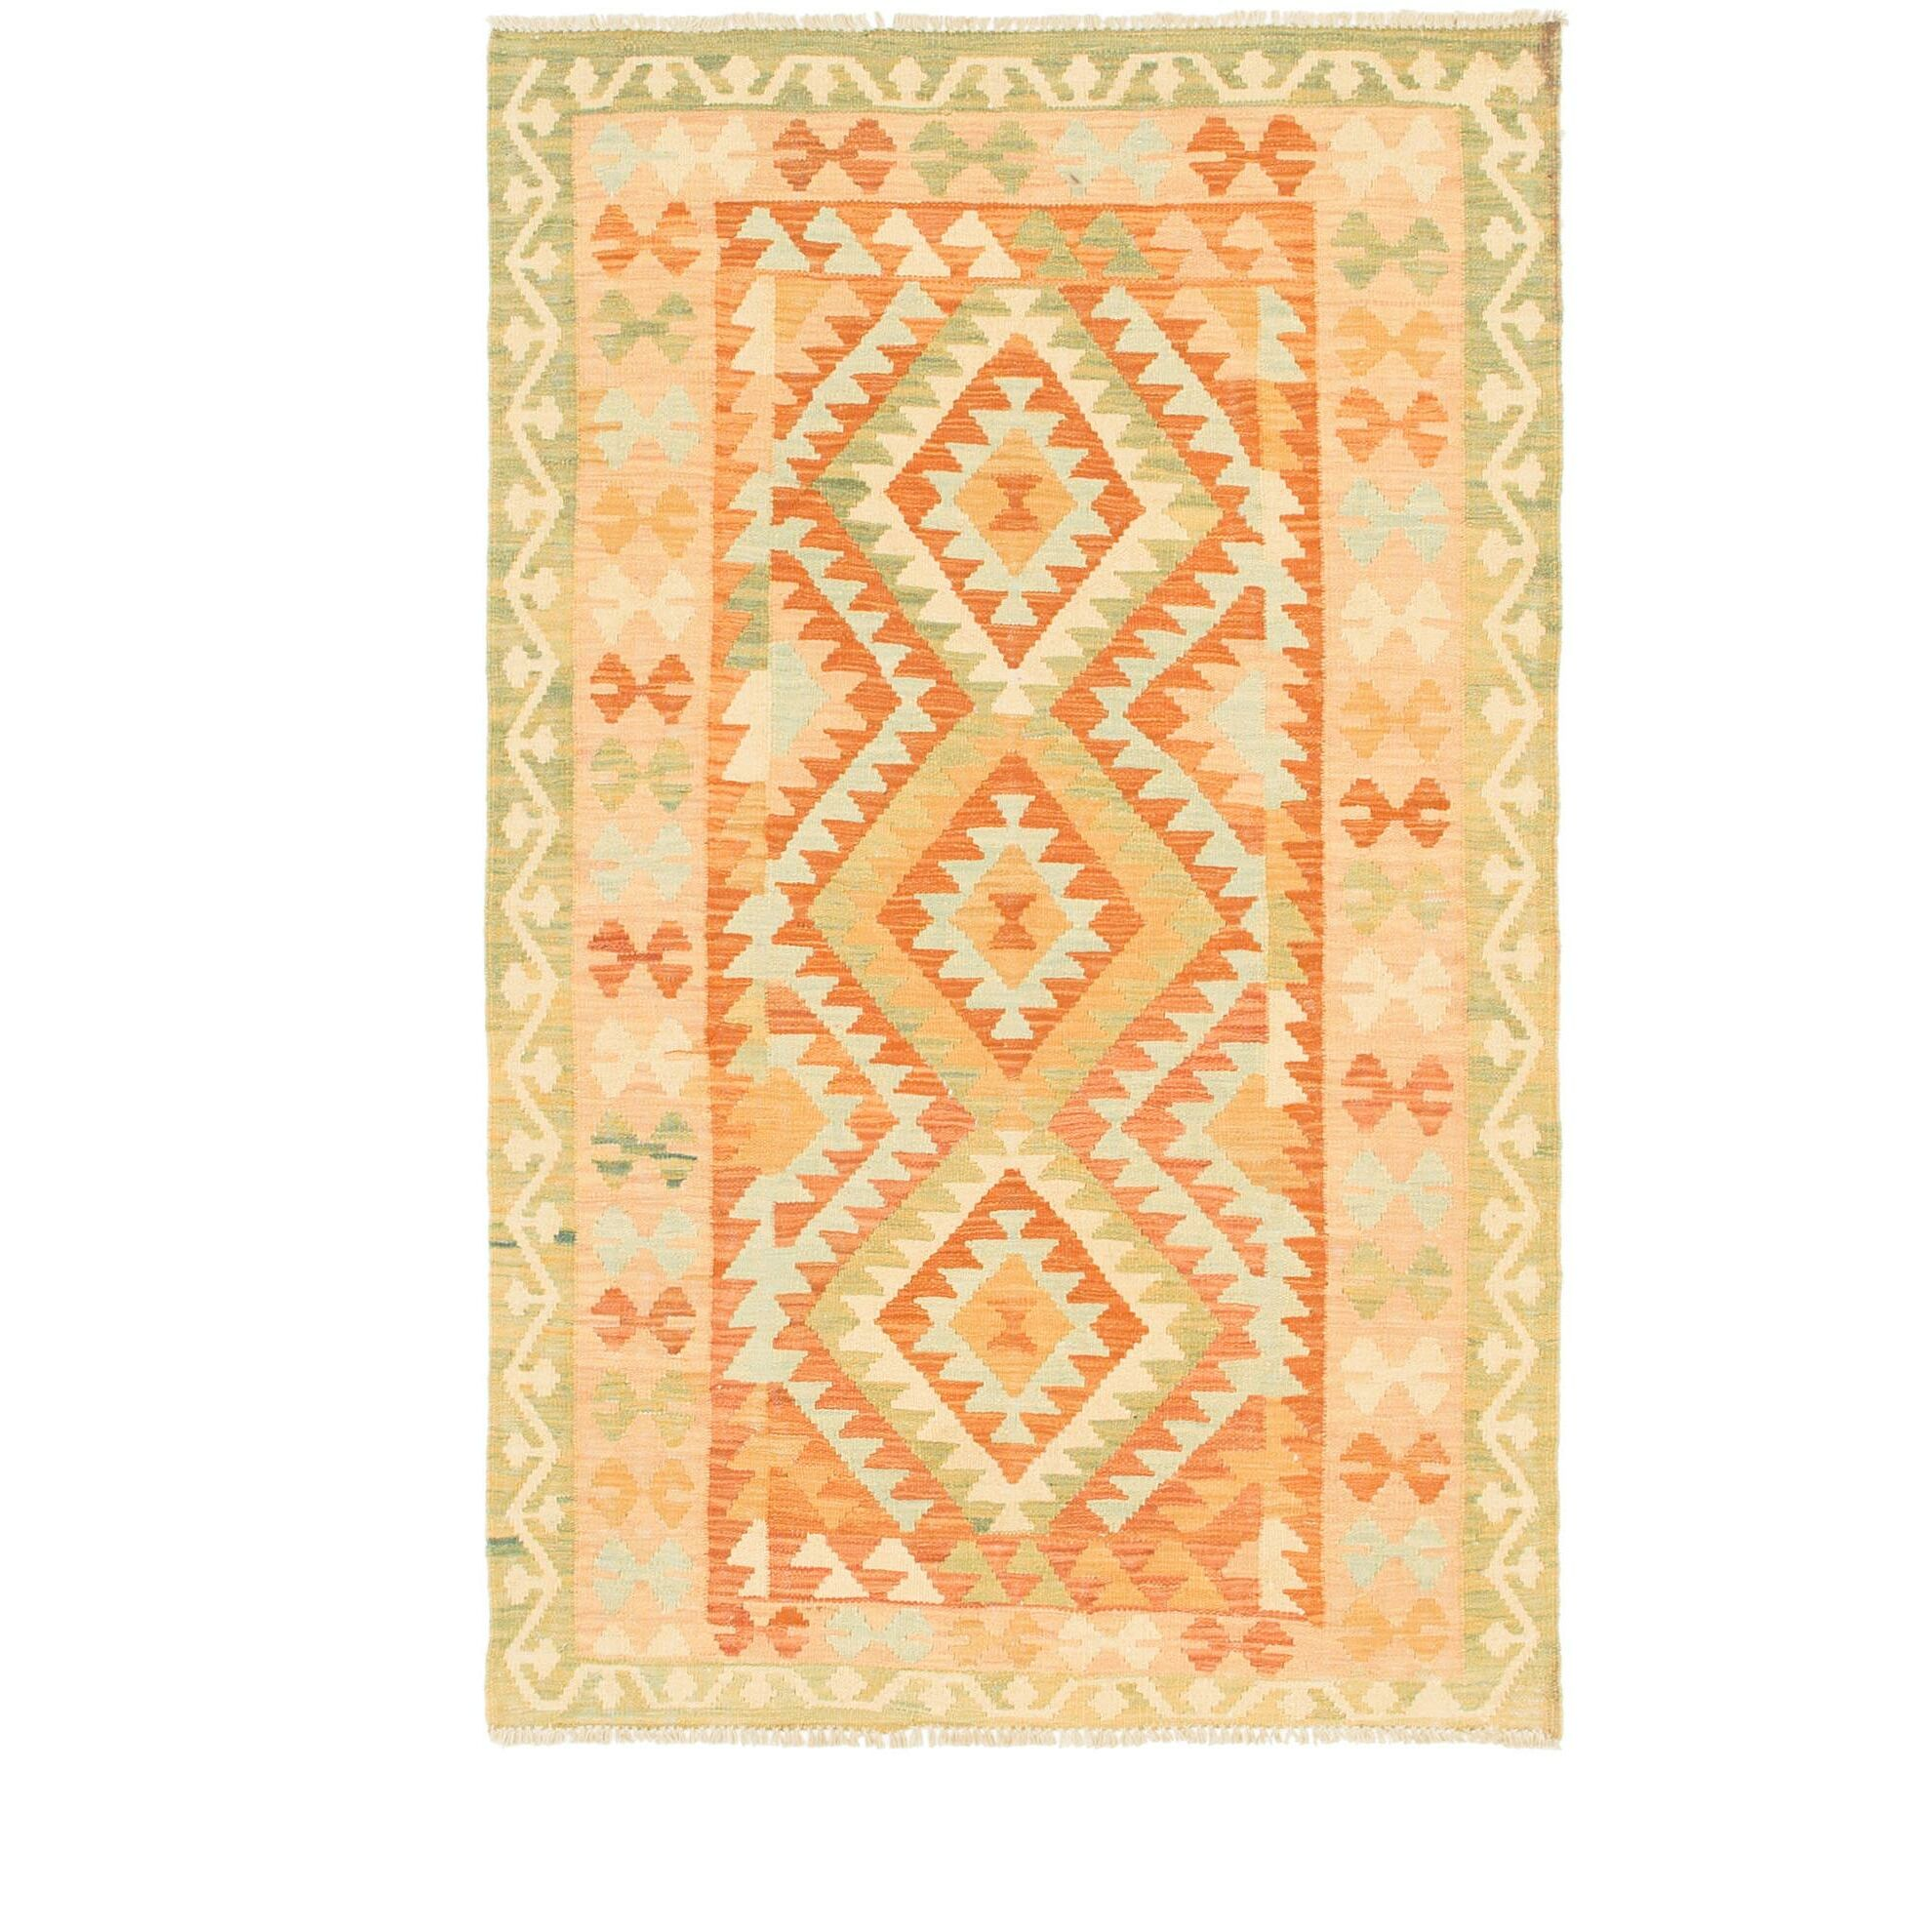 One-of-a-Kind Elland Hand-Knotted Wool Orange/Green Area Rug